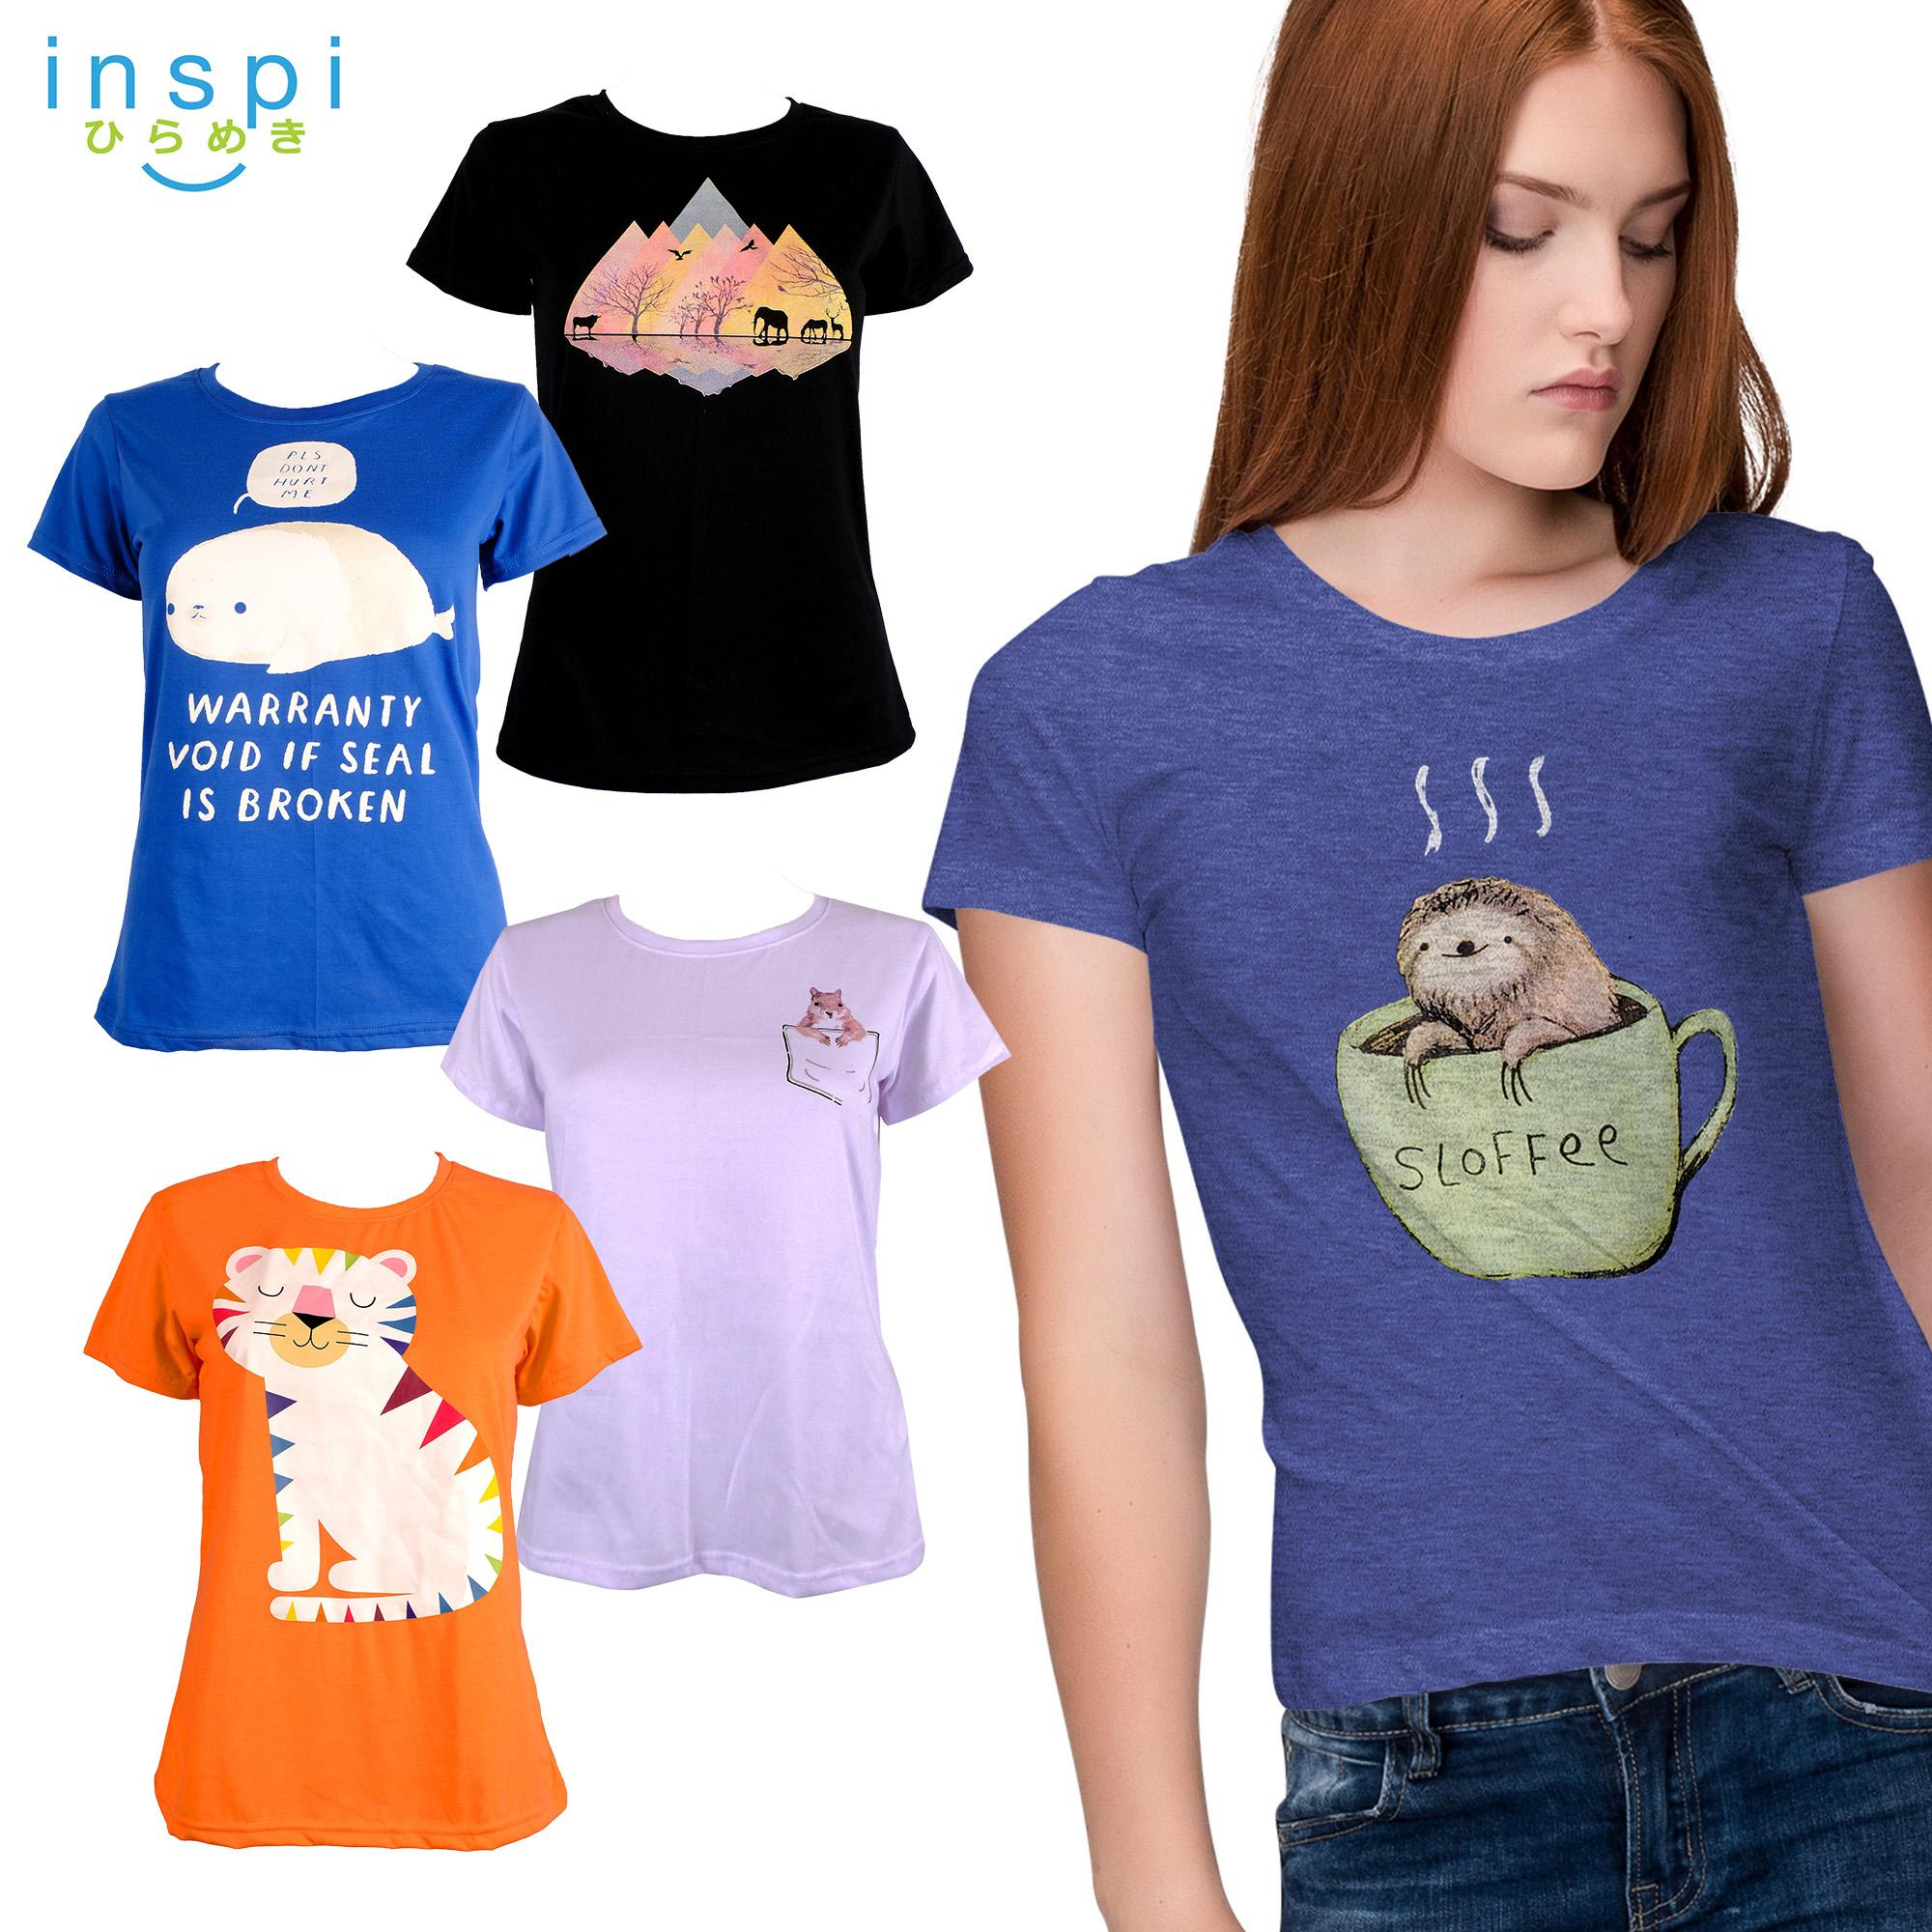 47809eaf INSPI Tees Ladies Pet Collection tshirt printed graphic tee Ladies t shirt  shirts women tshirts for